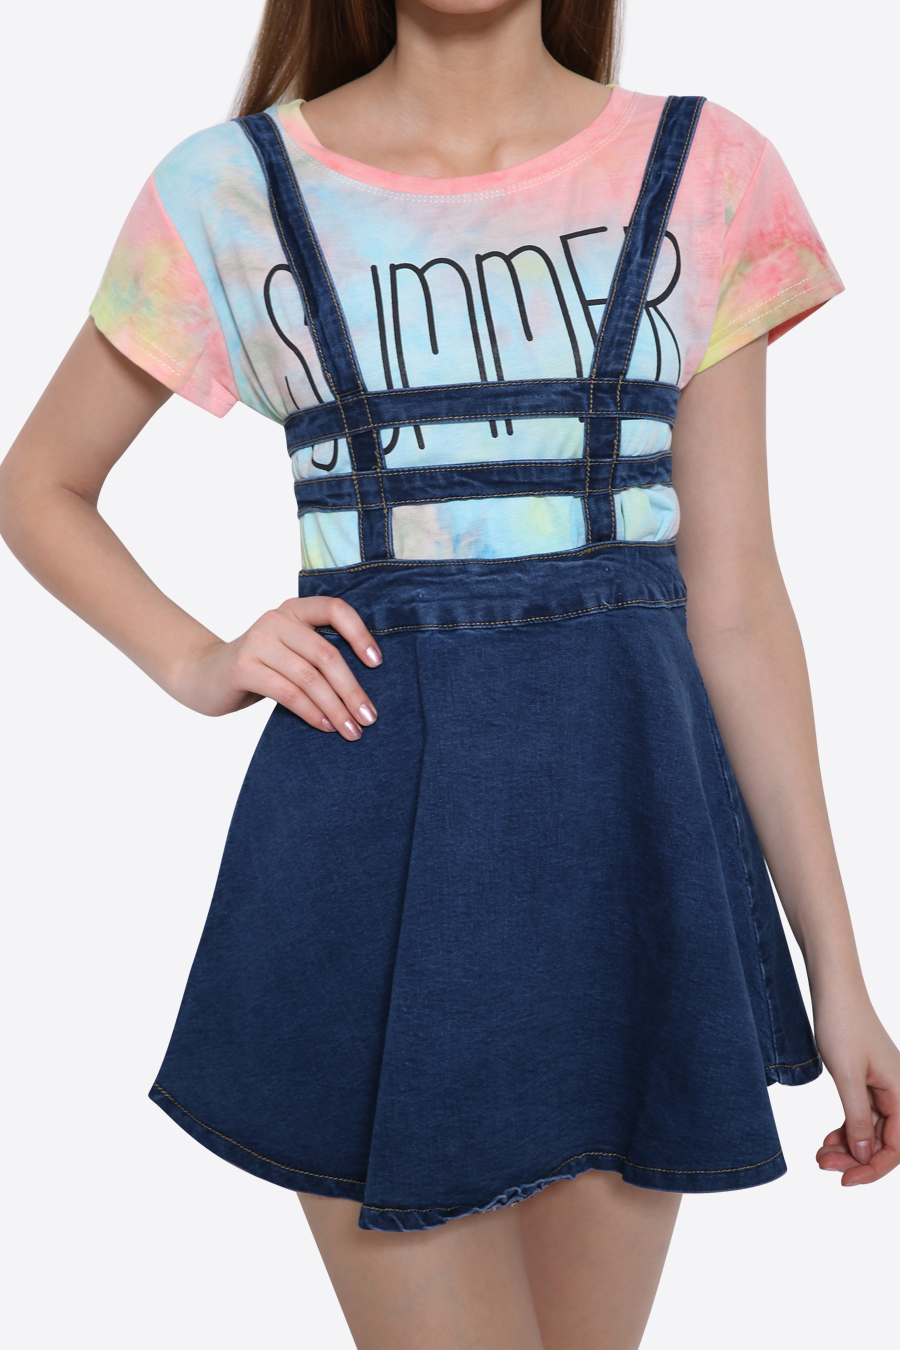 new summer suspender denim skirt 183 moooh 183